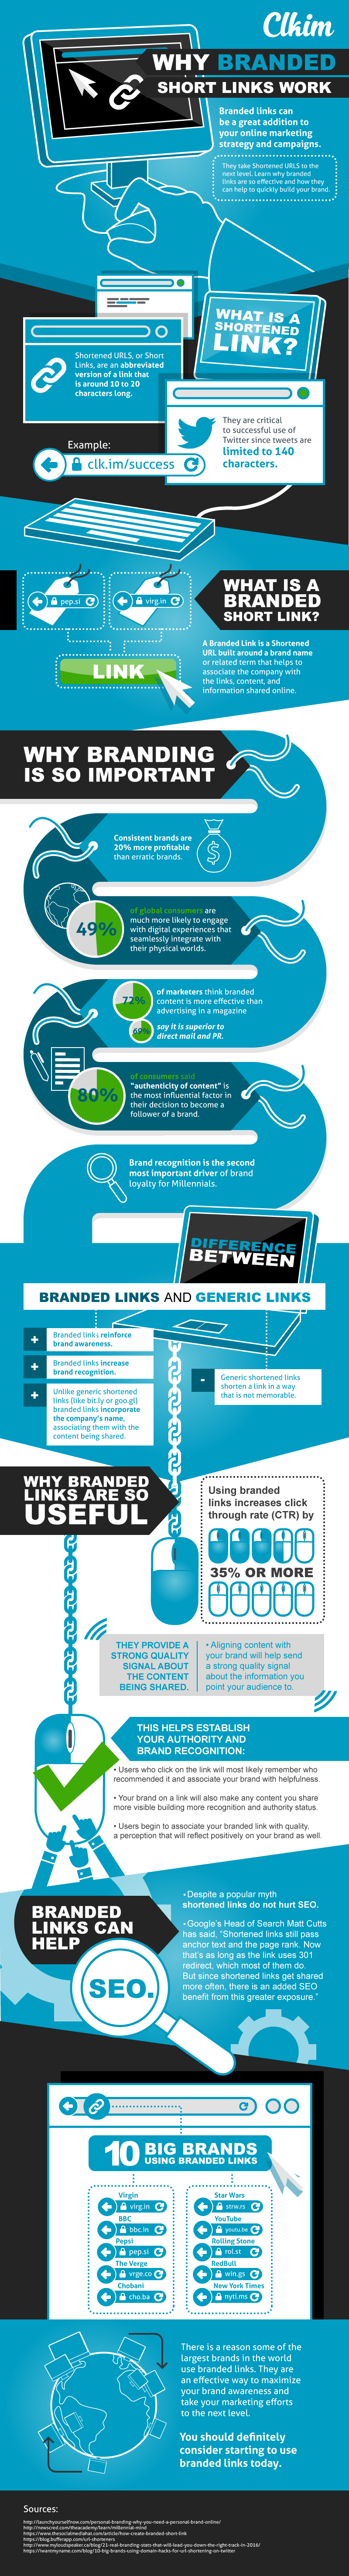 clkim_branded_links_infographic